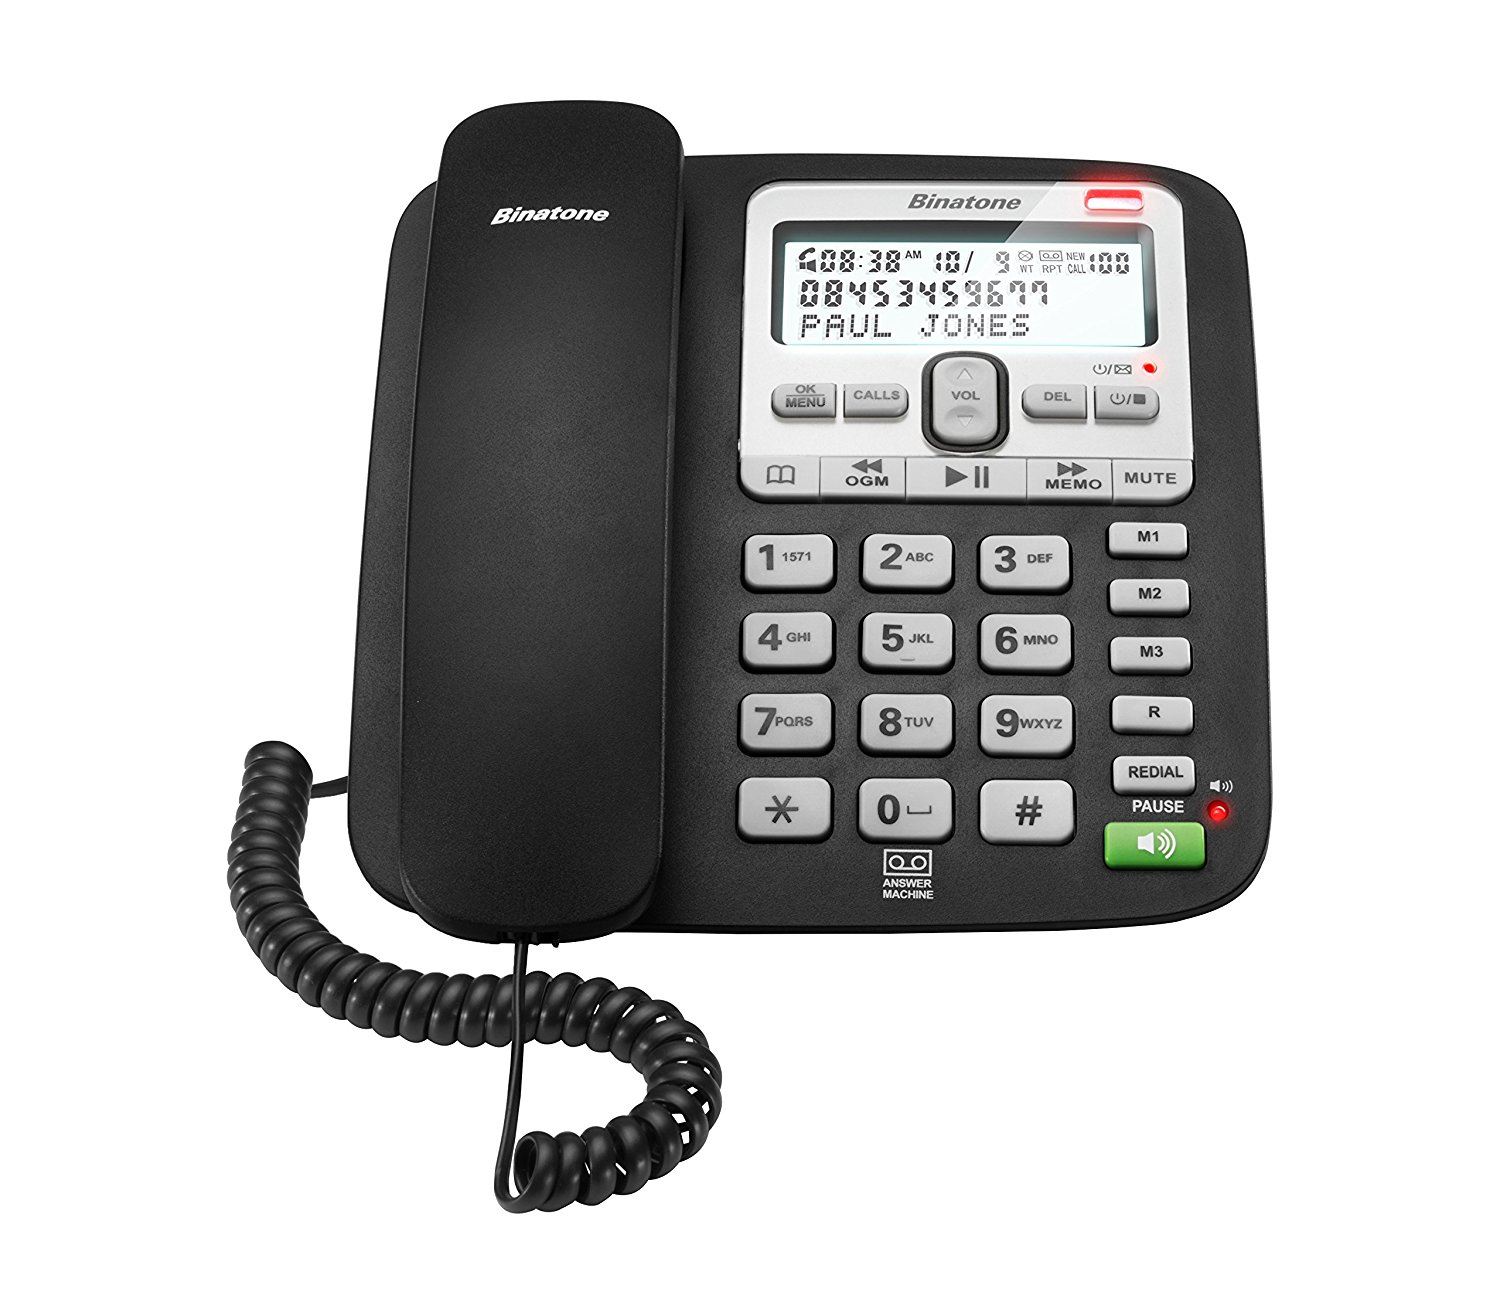 New Binatone Acura 3000 Single Corded Phone With Call